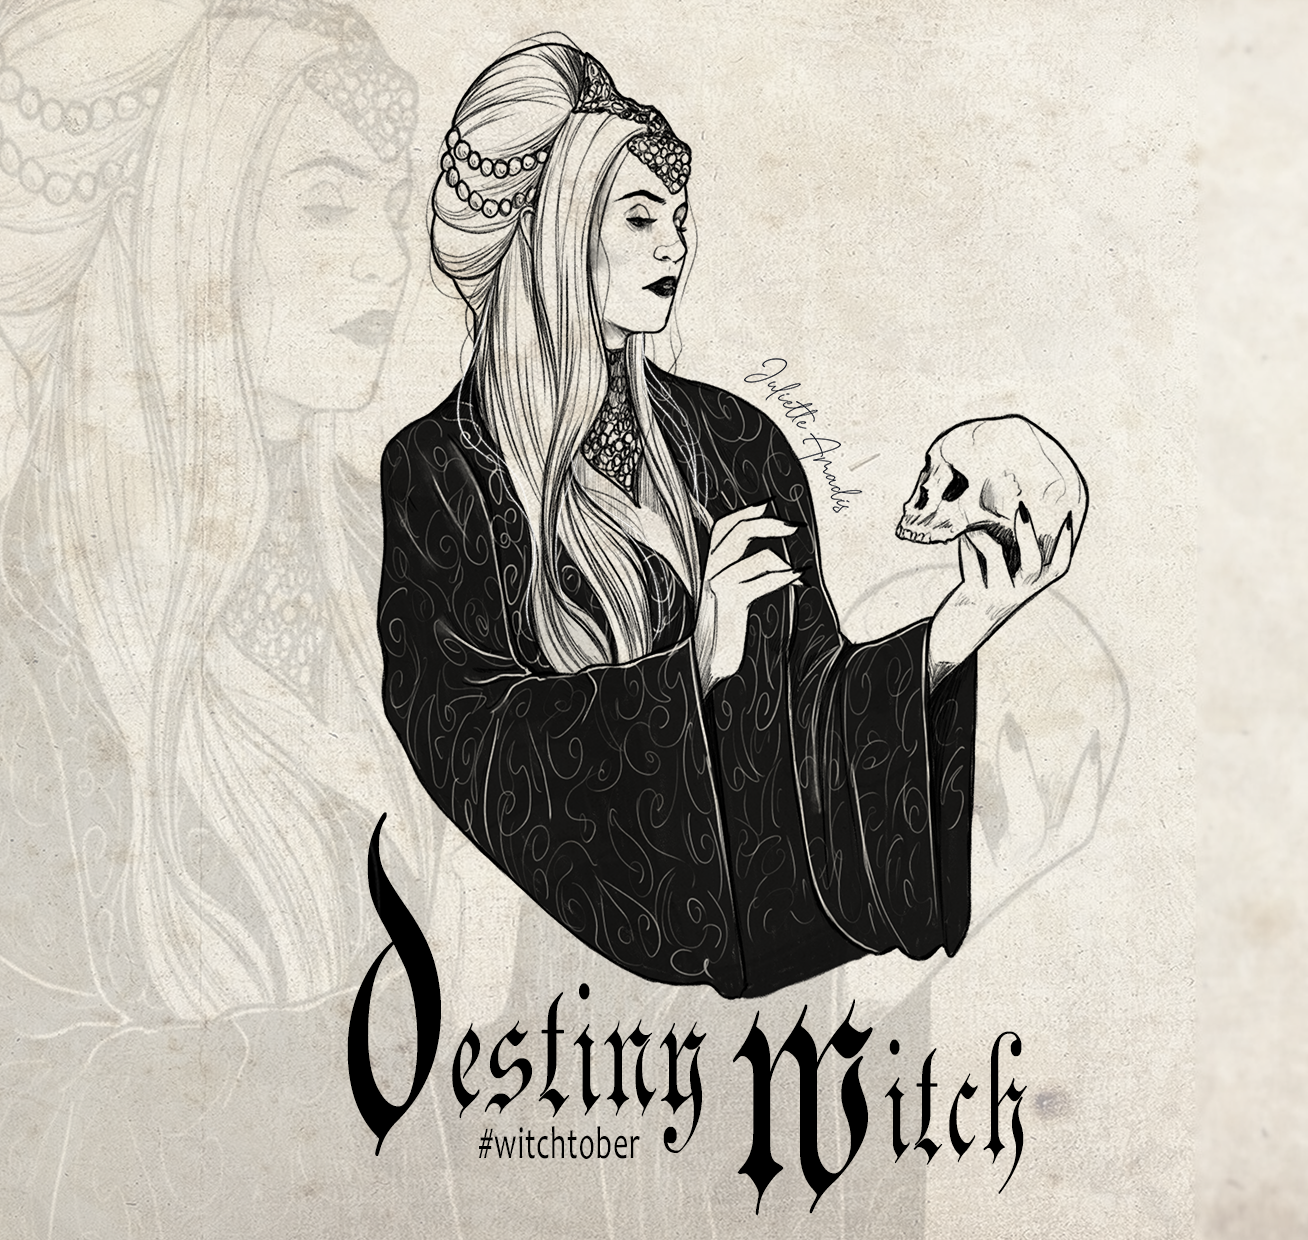 Witchtober 25 : Destiny Witch